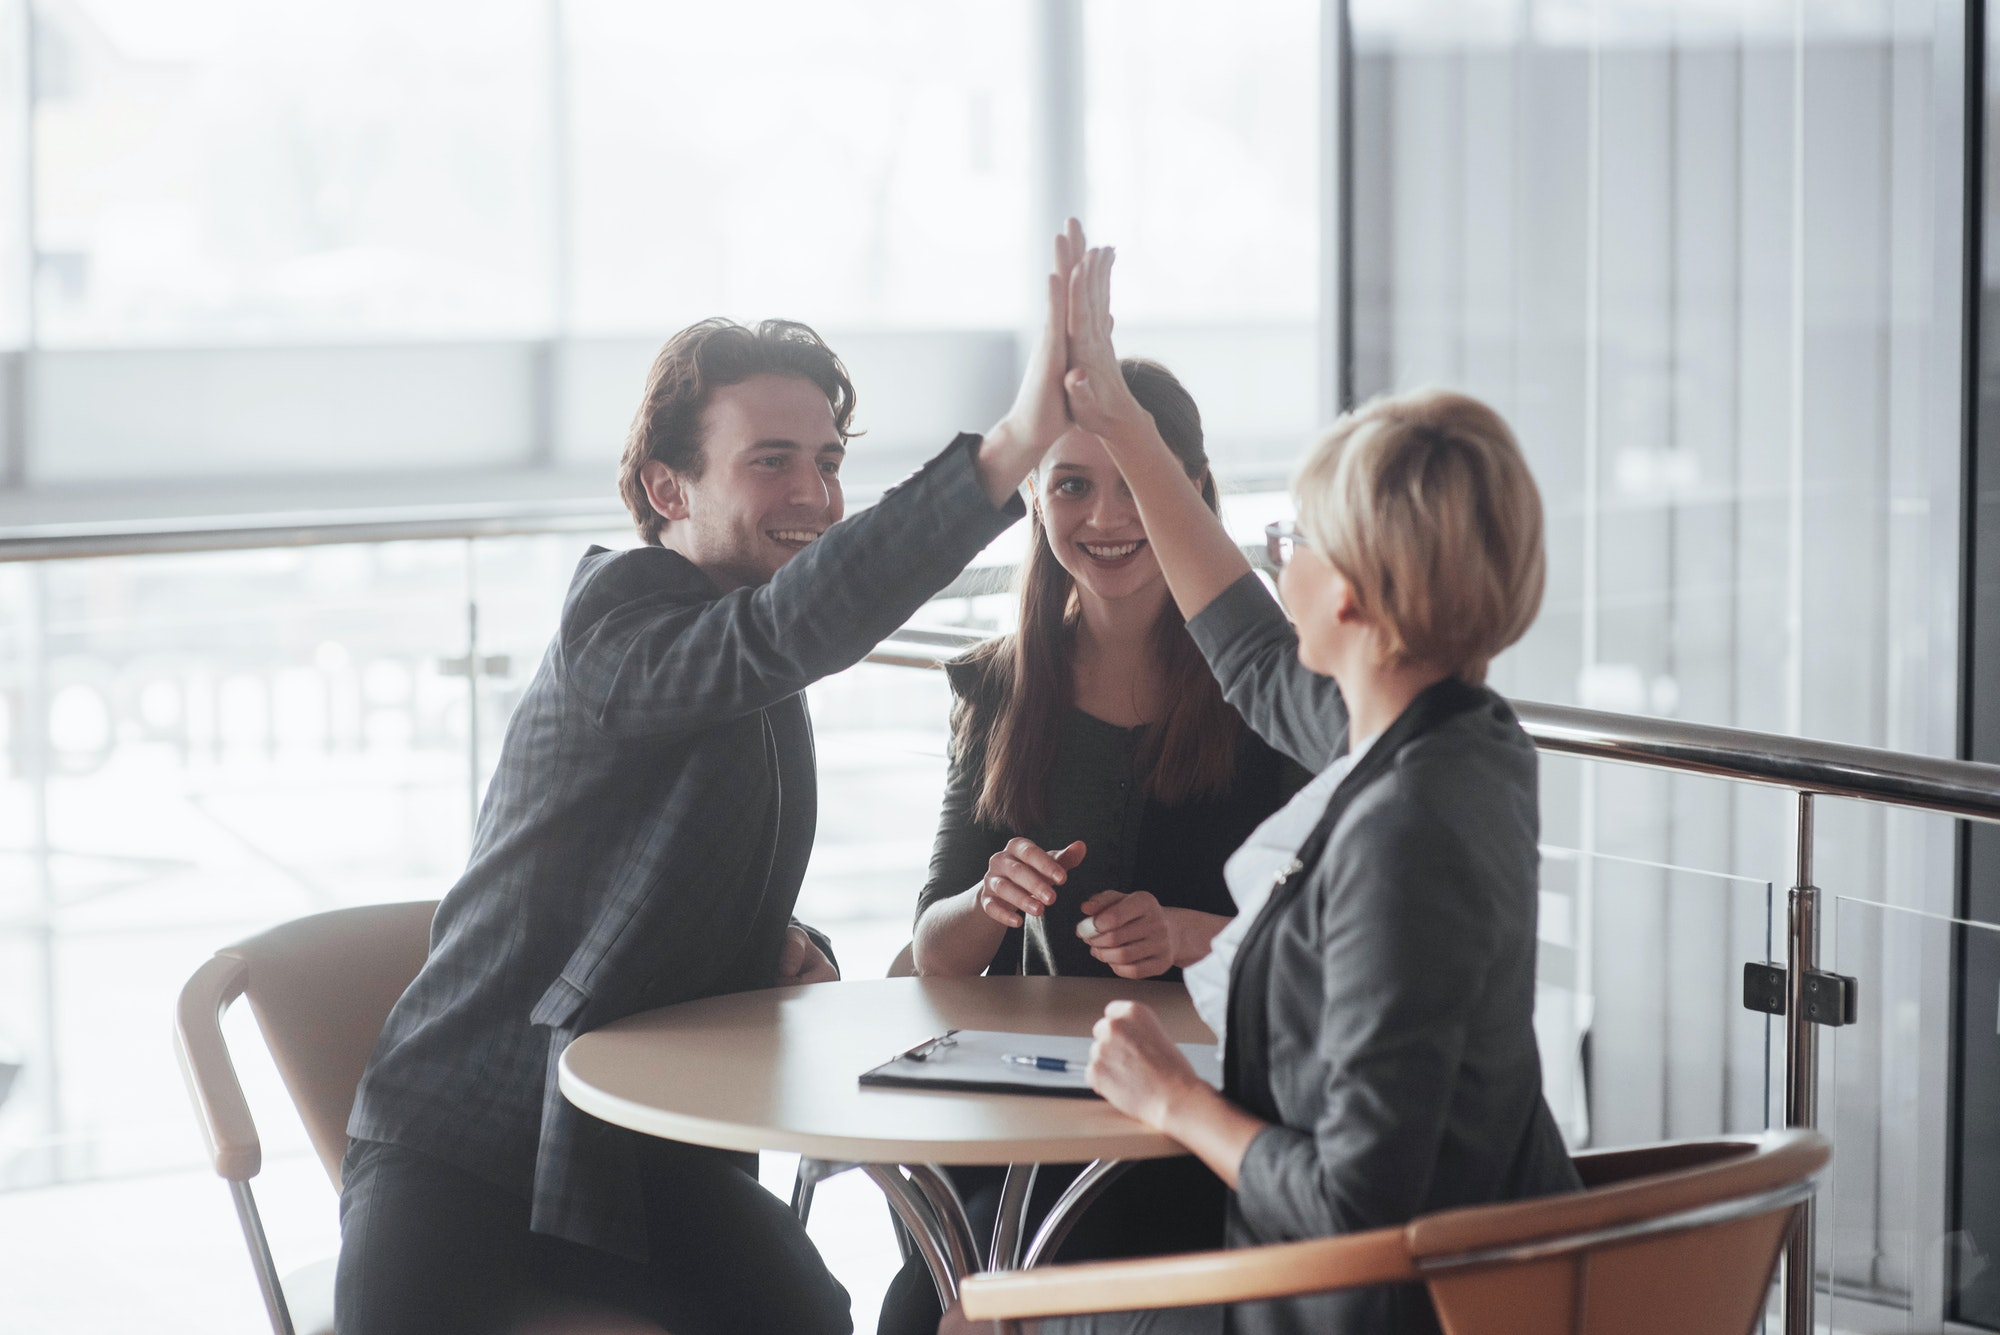 Happy successful business team giving a high fives gesture as they laugh and cheer their success